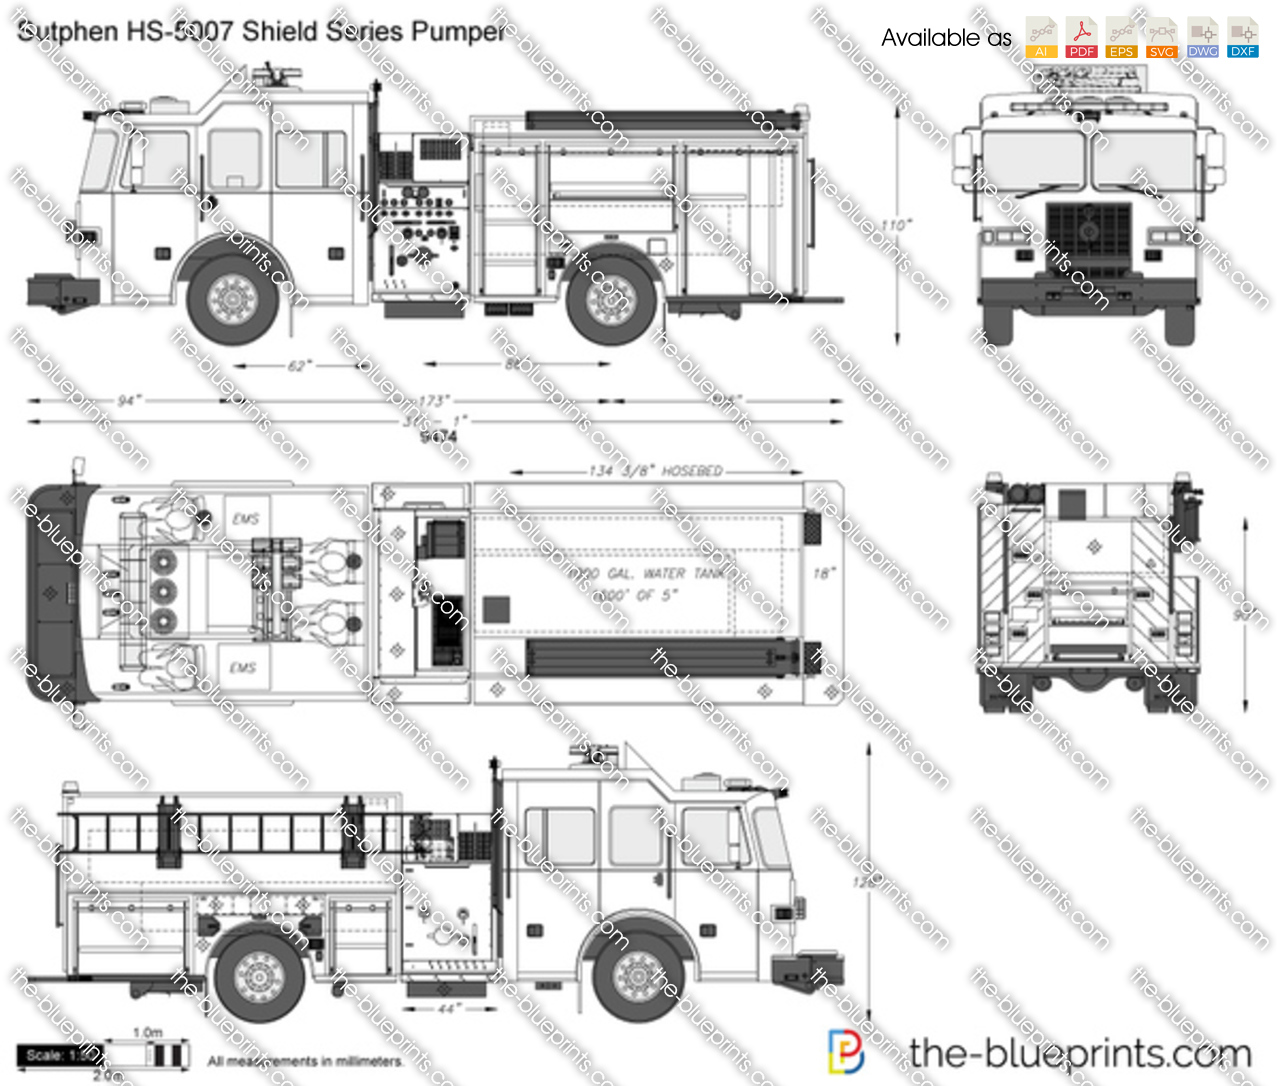 Sutphen HS-5007 Shield Series Pumper